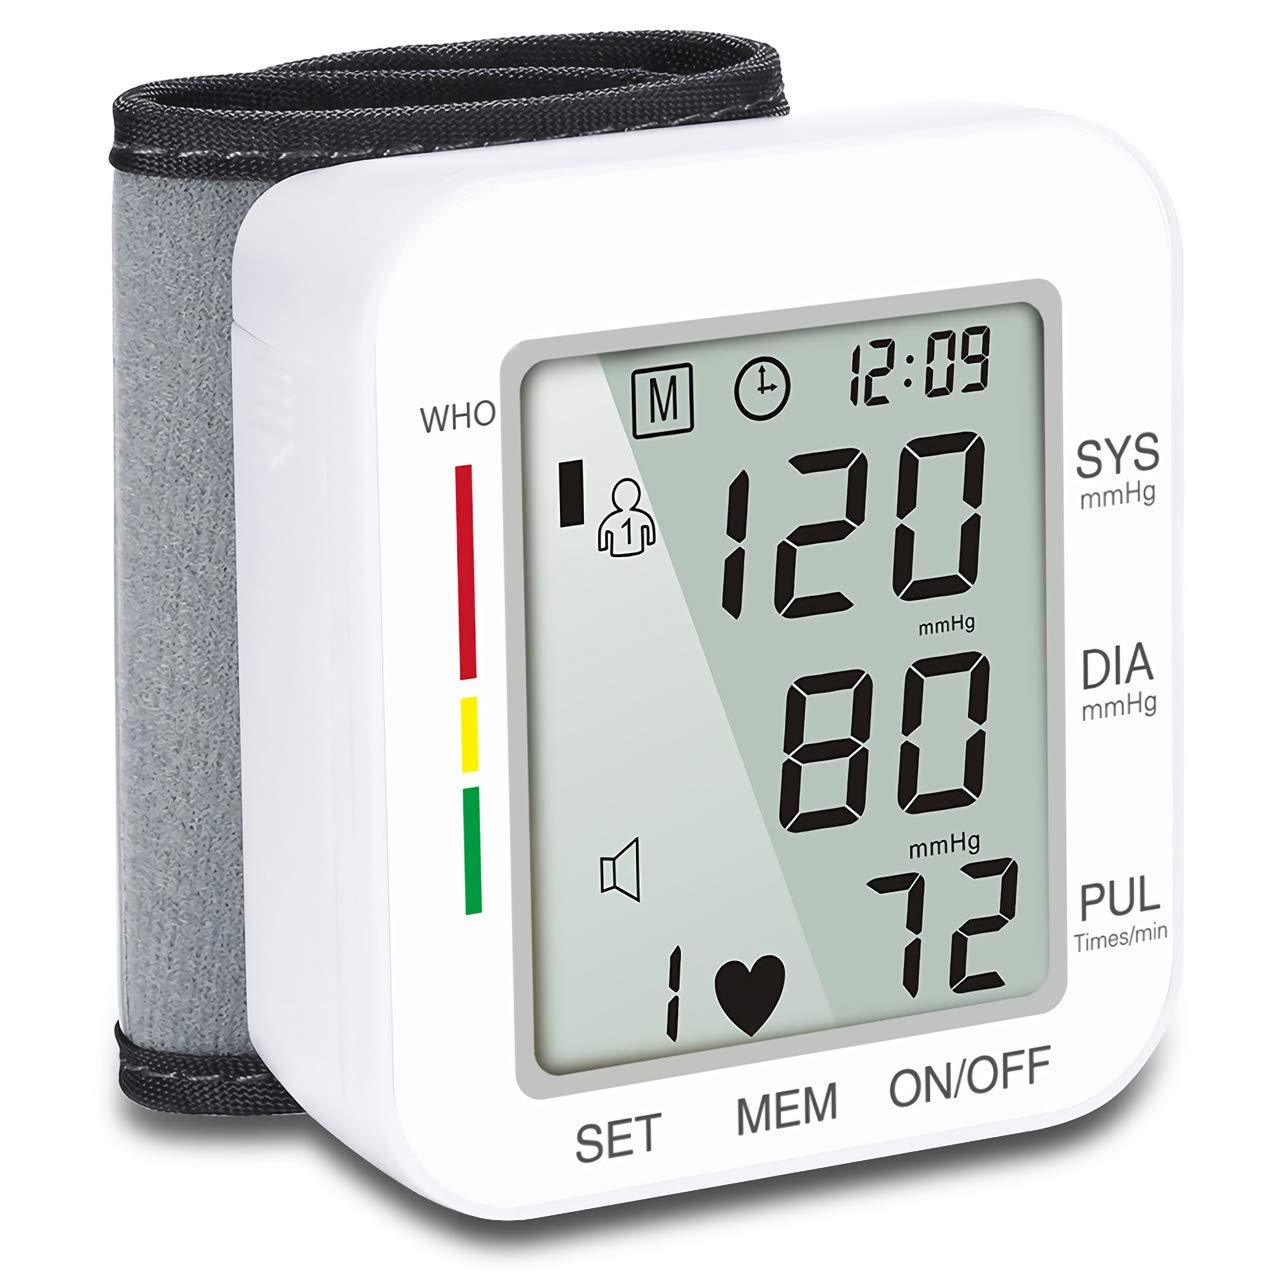 Fully Automatic Wrist Blood Pressure Monitor - 2019 Latest Edition - 90 * 2 Set Memory with Portable Storage Case